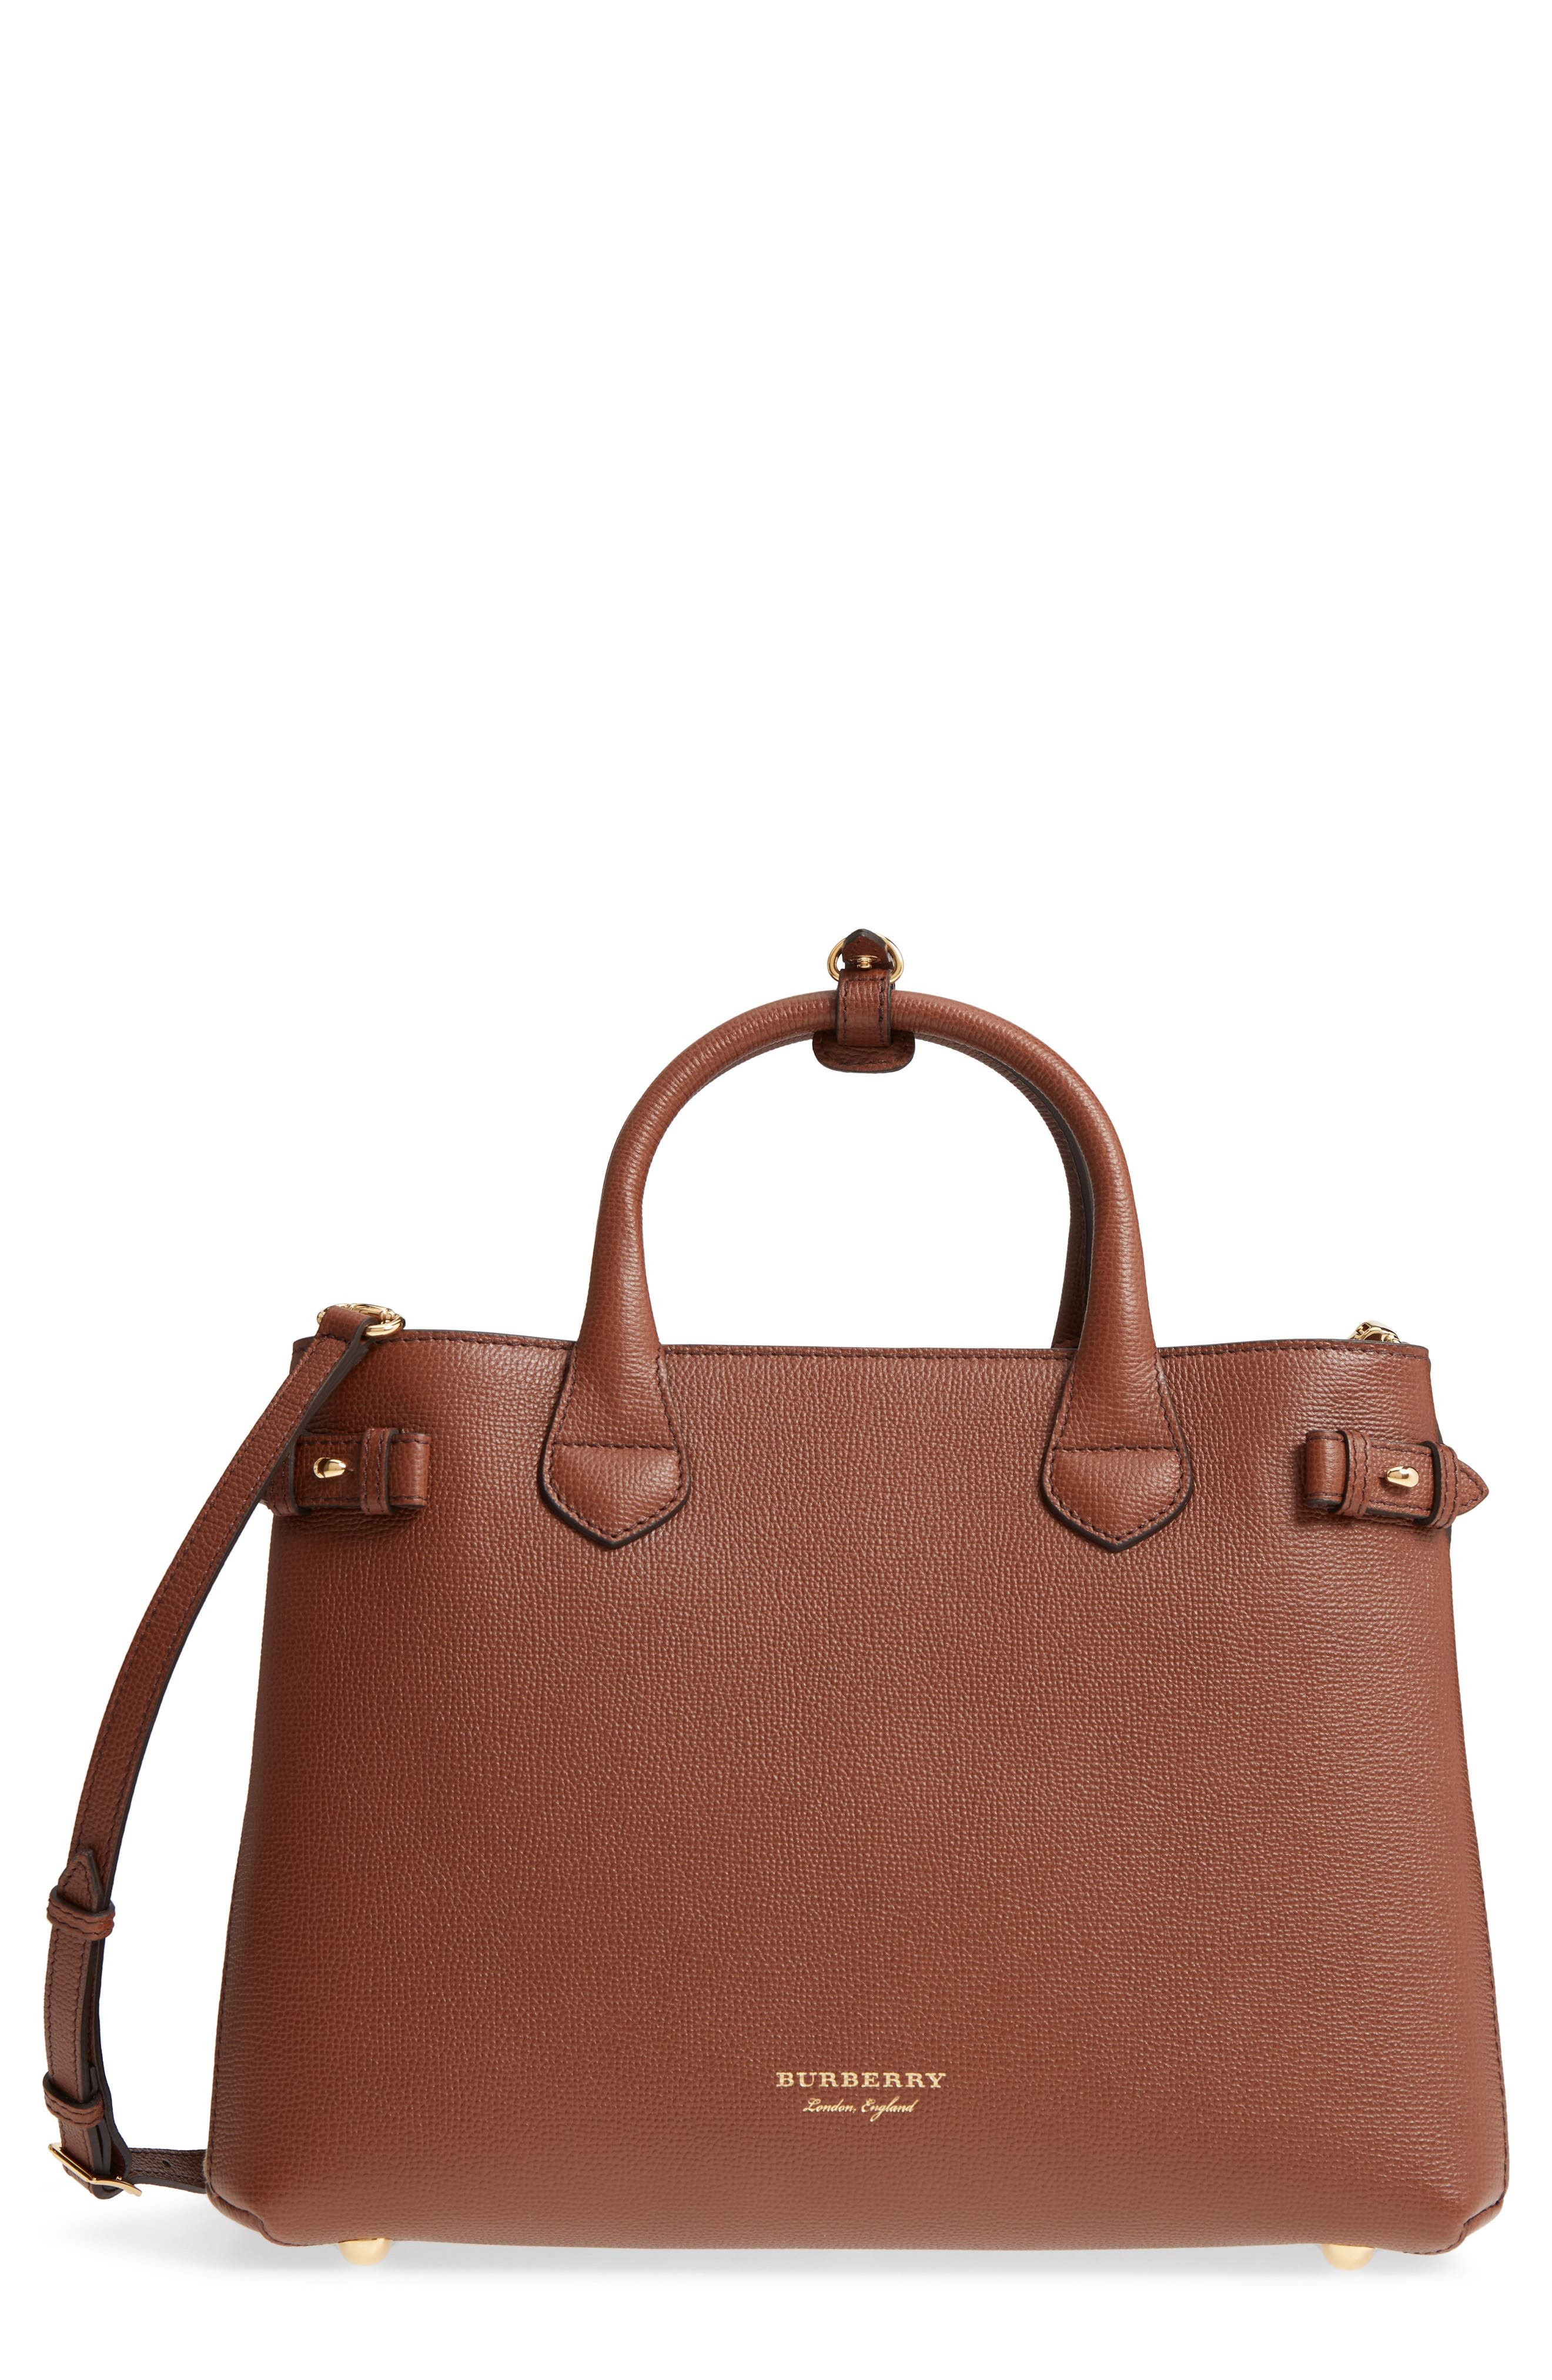 Medium Banner House Check Leather Tote,                         Main,                         color, TAN